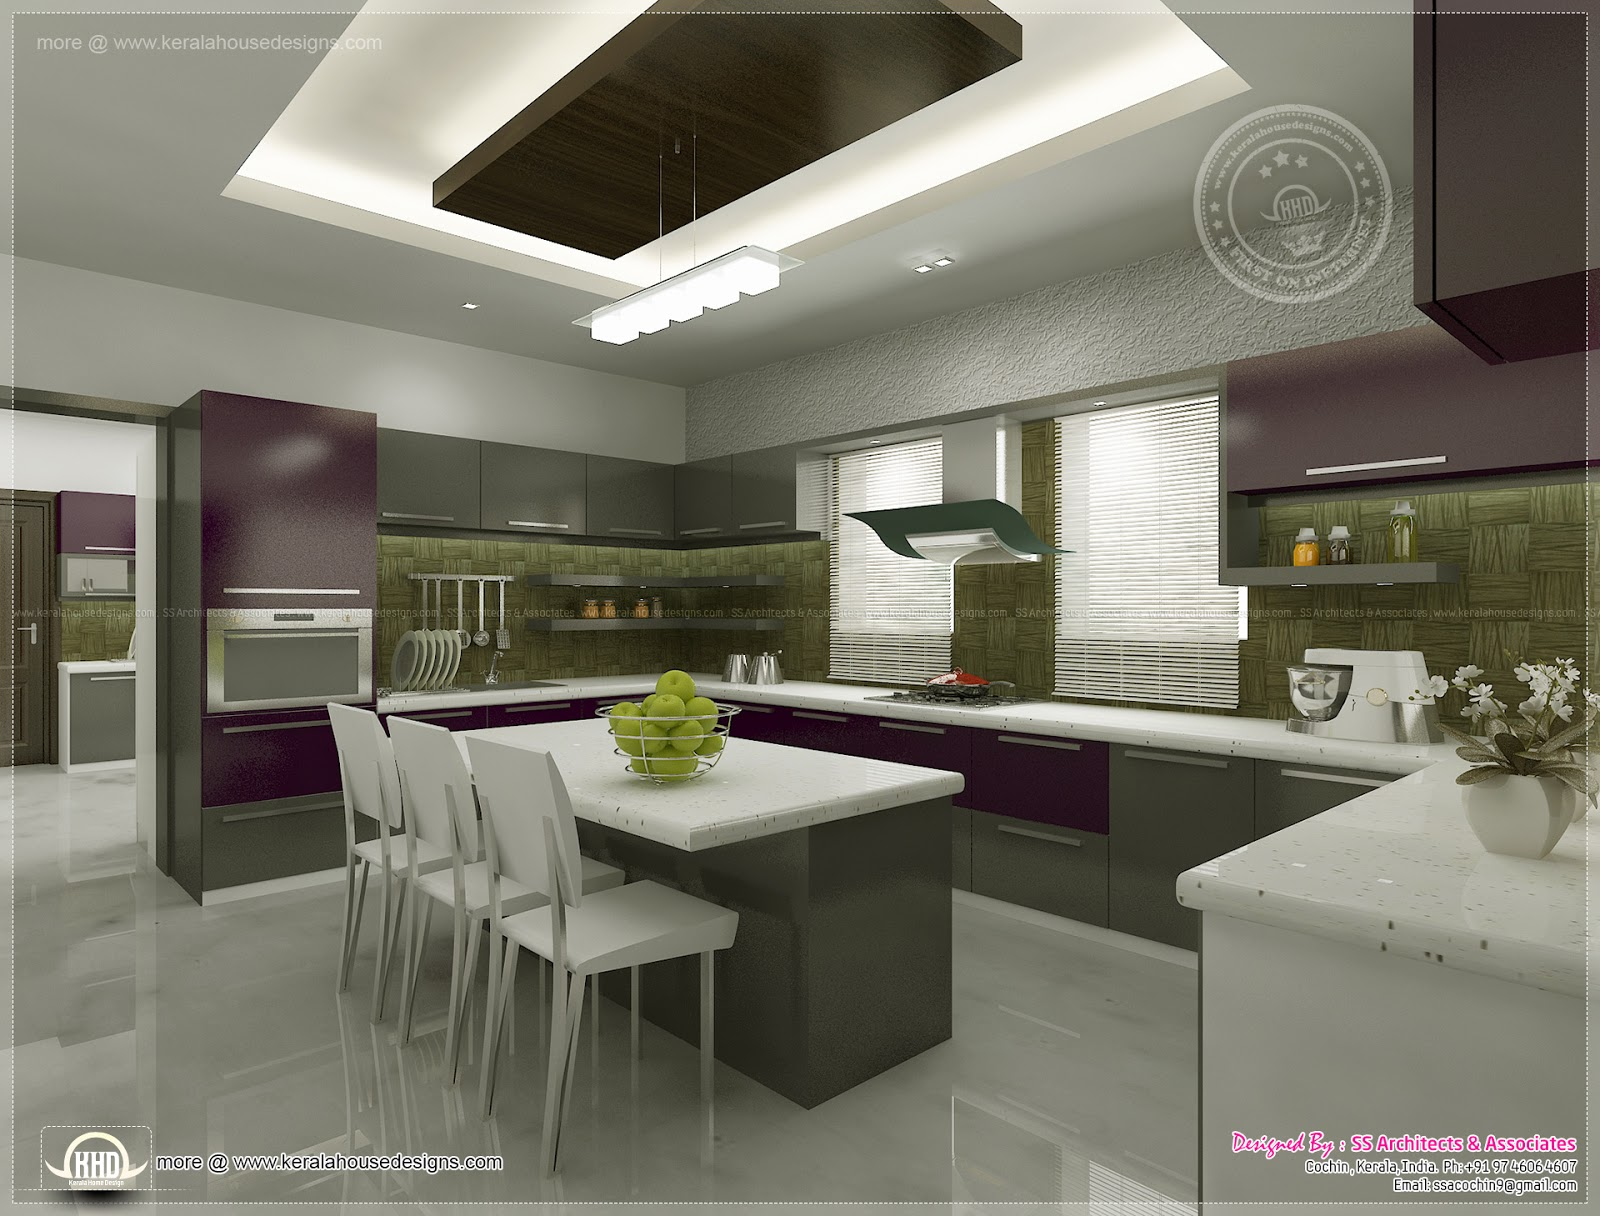 Kitchen Interior Views By Ss Architects Cochin Kerala Home Design And Floor Plans